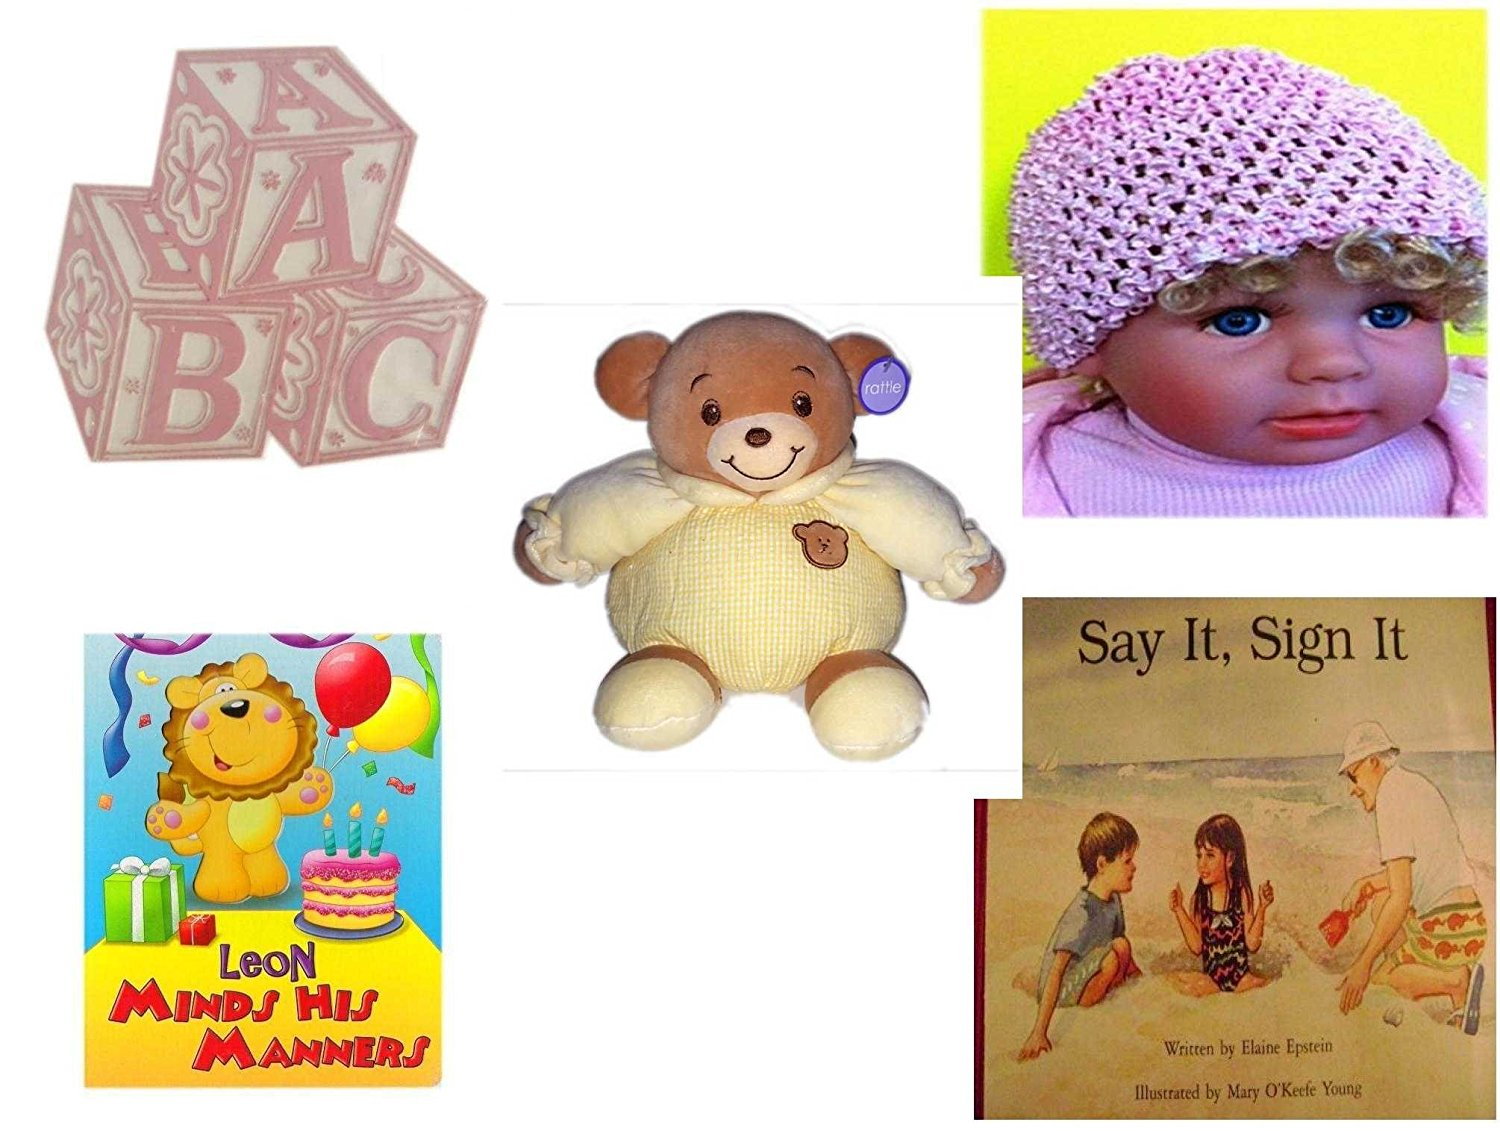 Children's Gift Bundle - Ages 0-2 [5 Piece] - ABC Baby Blocks Cake Topper Pink Girl - Baby Crochet Beanie Pink - Baby Bow Bear Rattle Plush - Leon Minds His Manners Board Book - Say It, Sign It